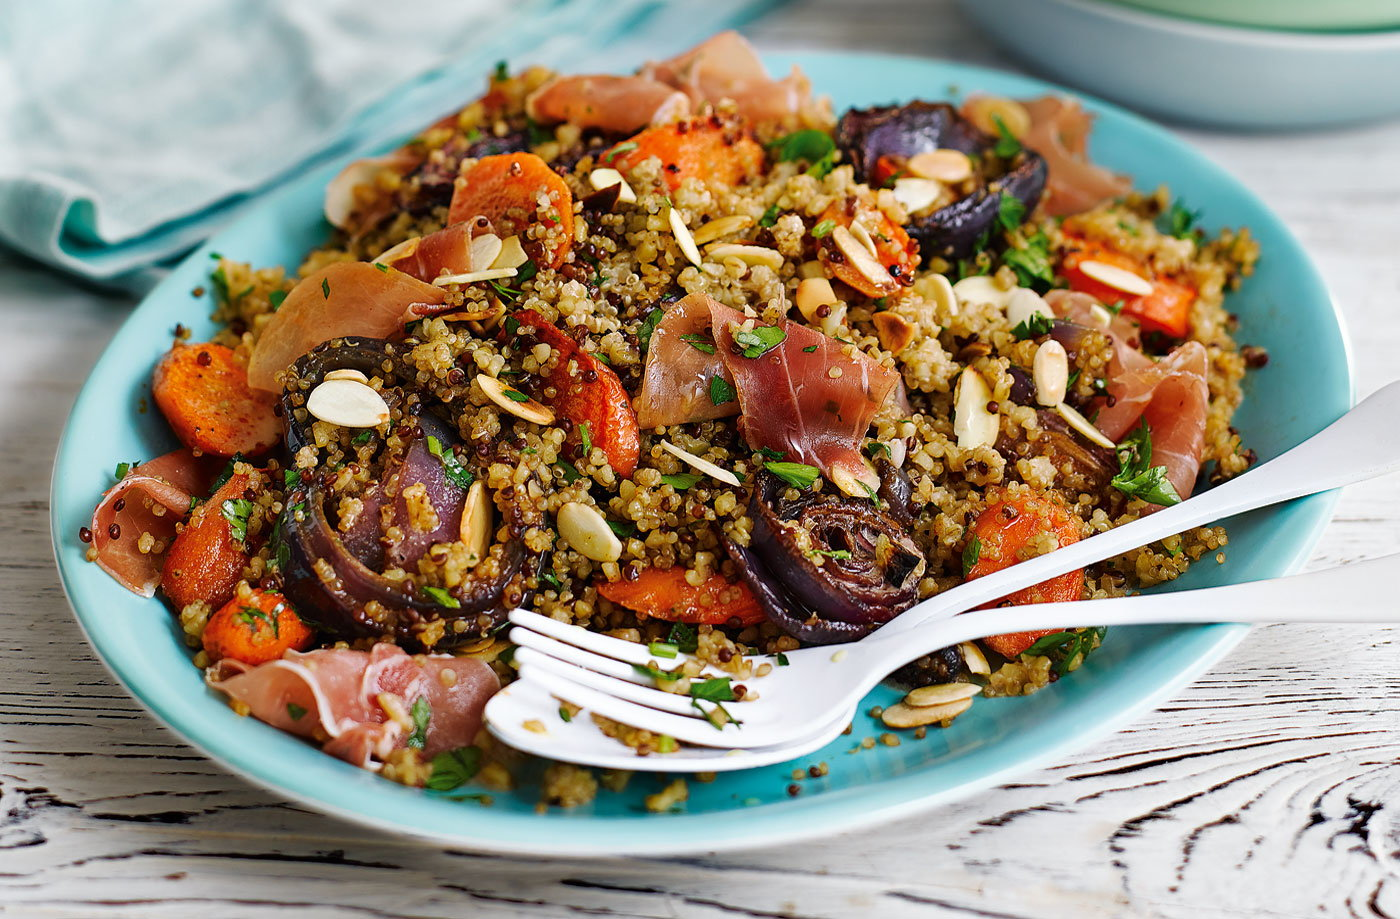 Roasted carrot quinoa with almonds and cured ham recipe